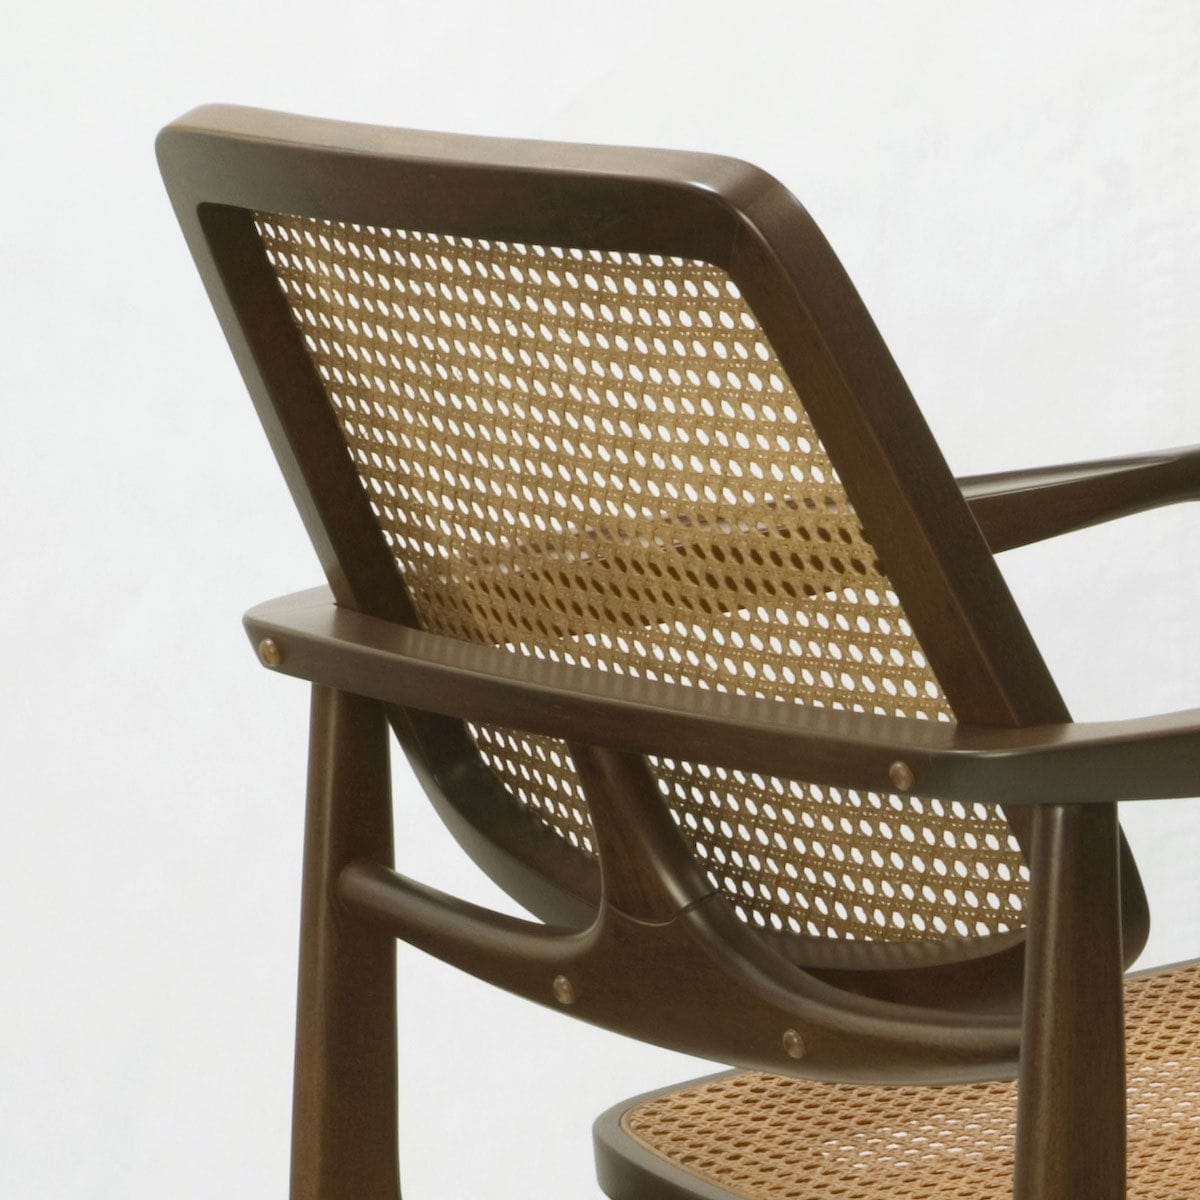 Contemporary Armchair / Solid Wood / Wooden OSCAR By Sergio Rodrigues  Triode Design